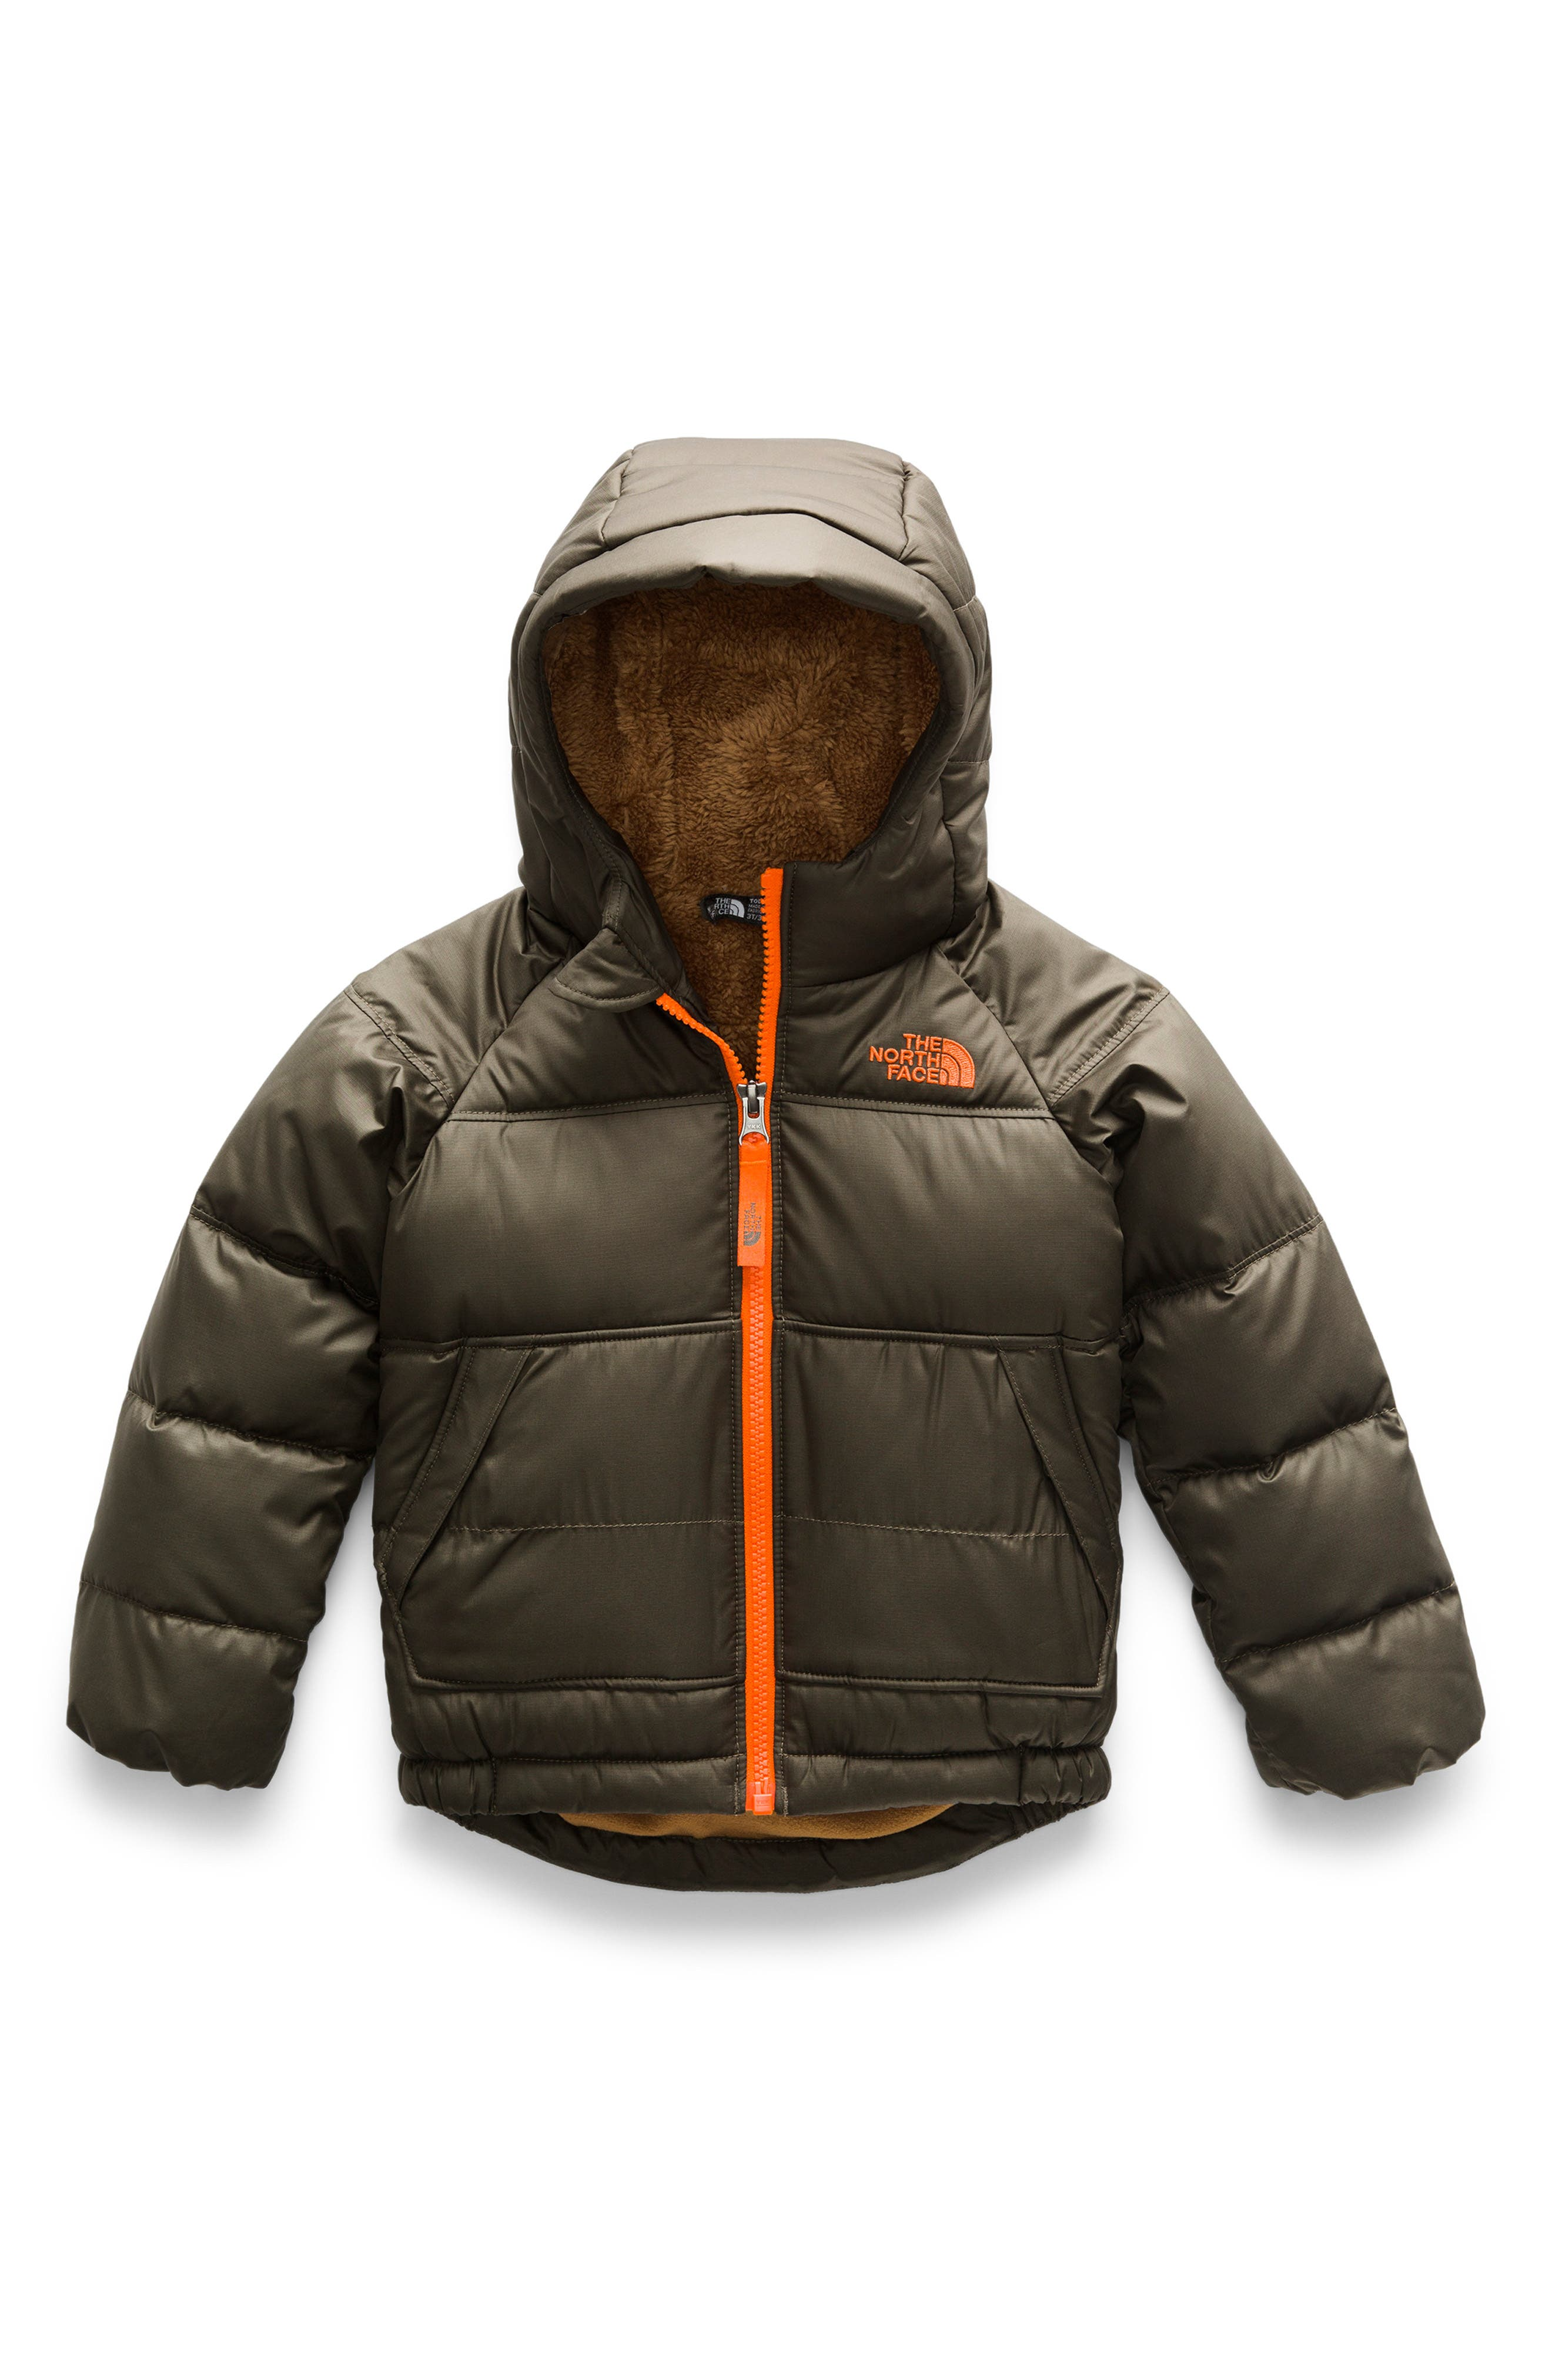 Toddler Boys The North Face Moondoggy 20 Hooded Down Jacket Size 3T  Green